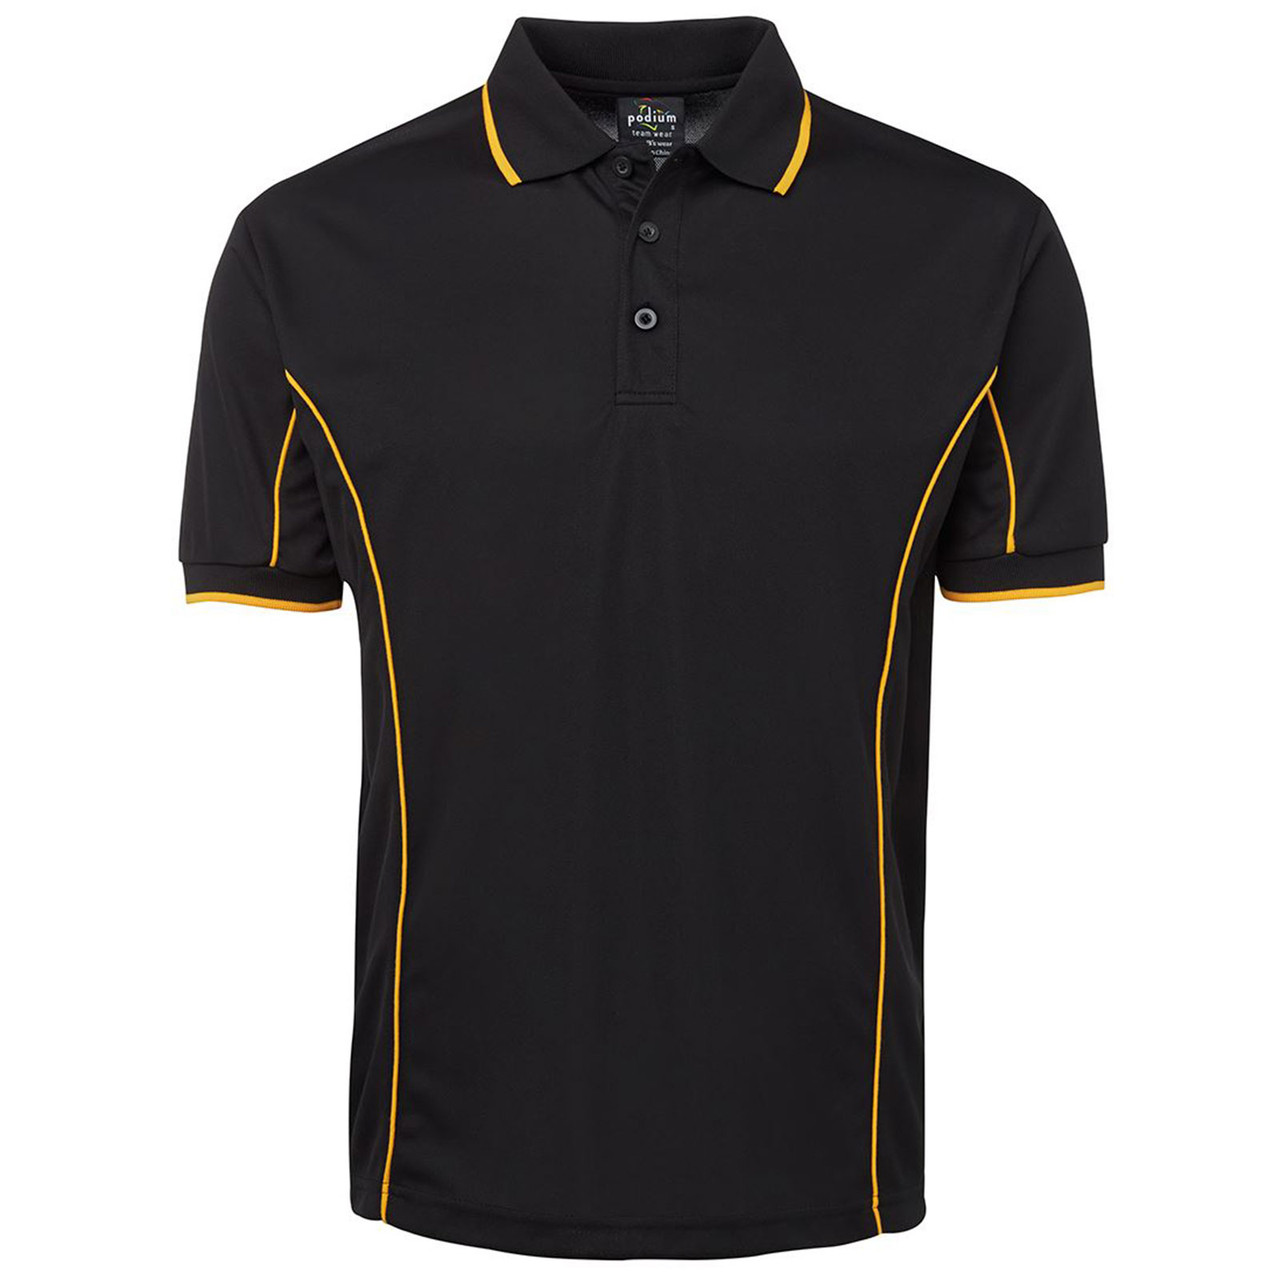 New Mens Pique Polo T Shirt Short Sleeve Cotton Contrast Panel Big Size S-5XL